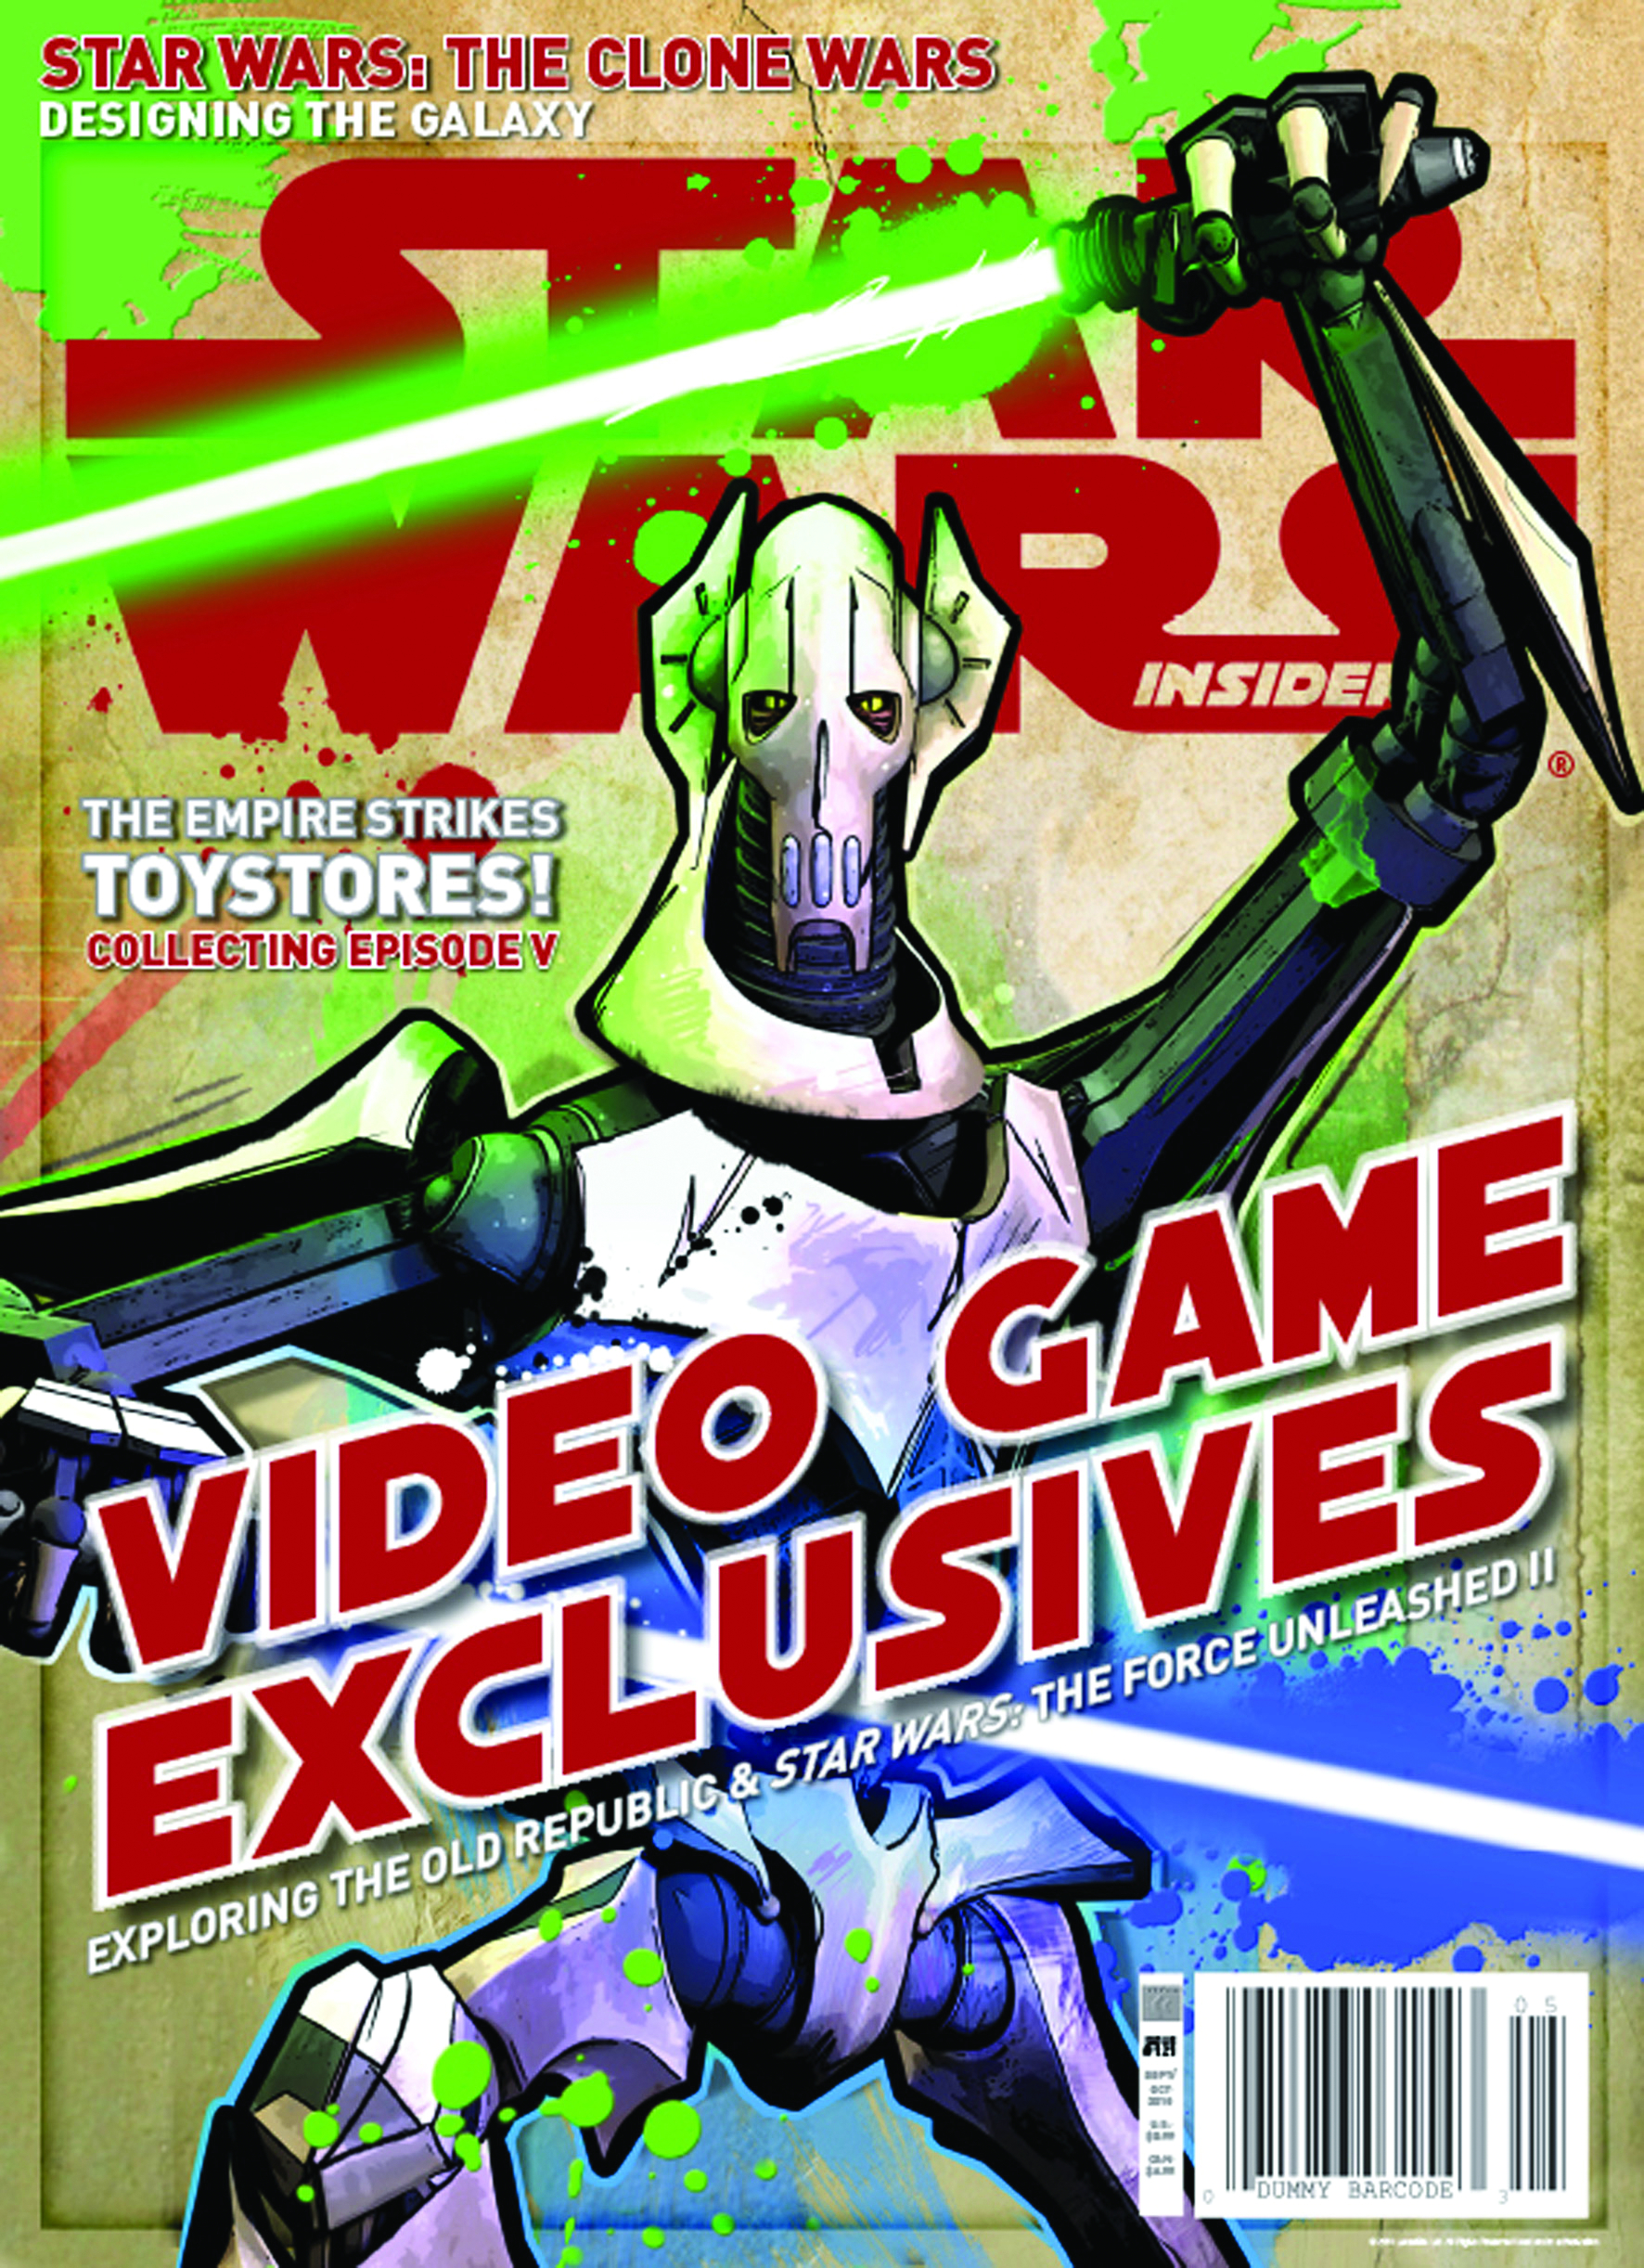 STAR WARS INSIDER #121 NEWSSTAND ED